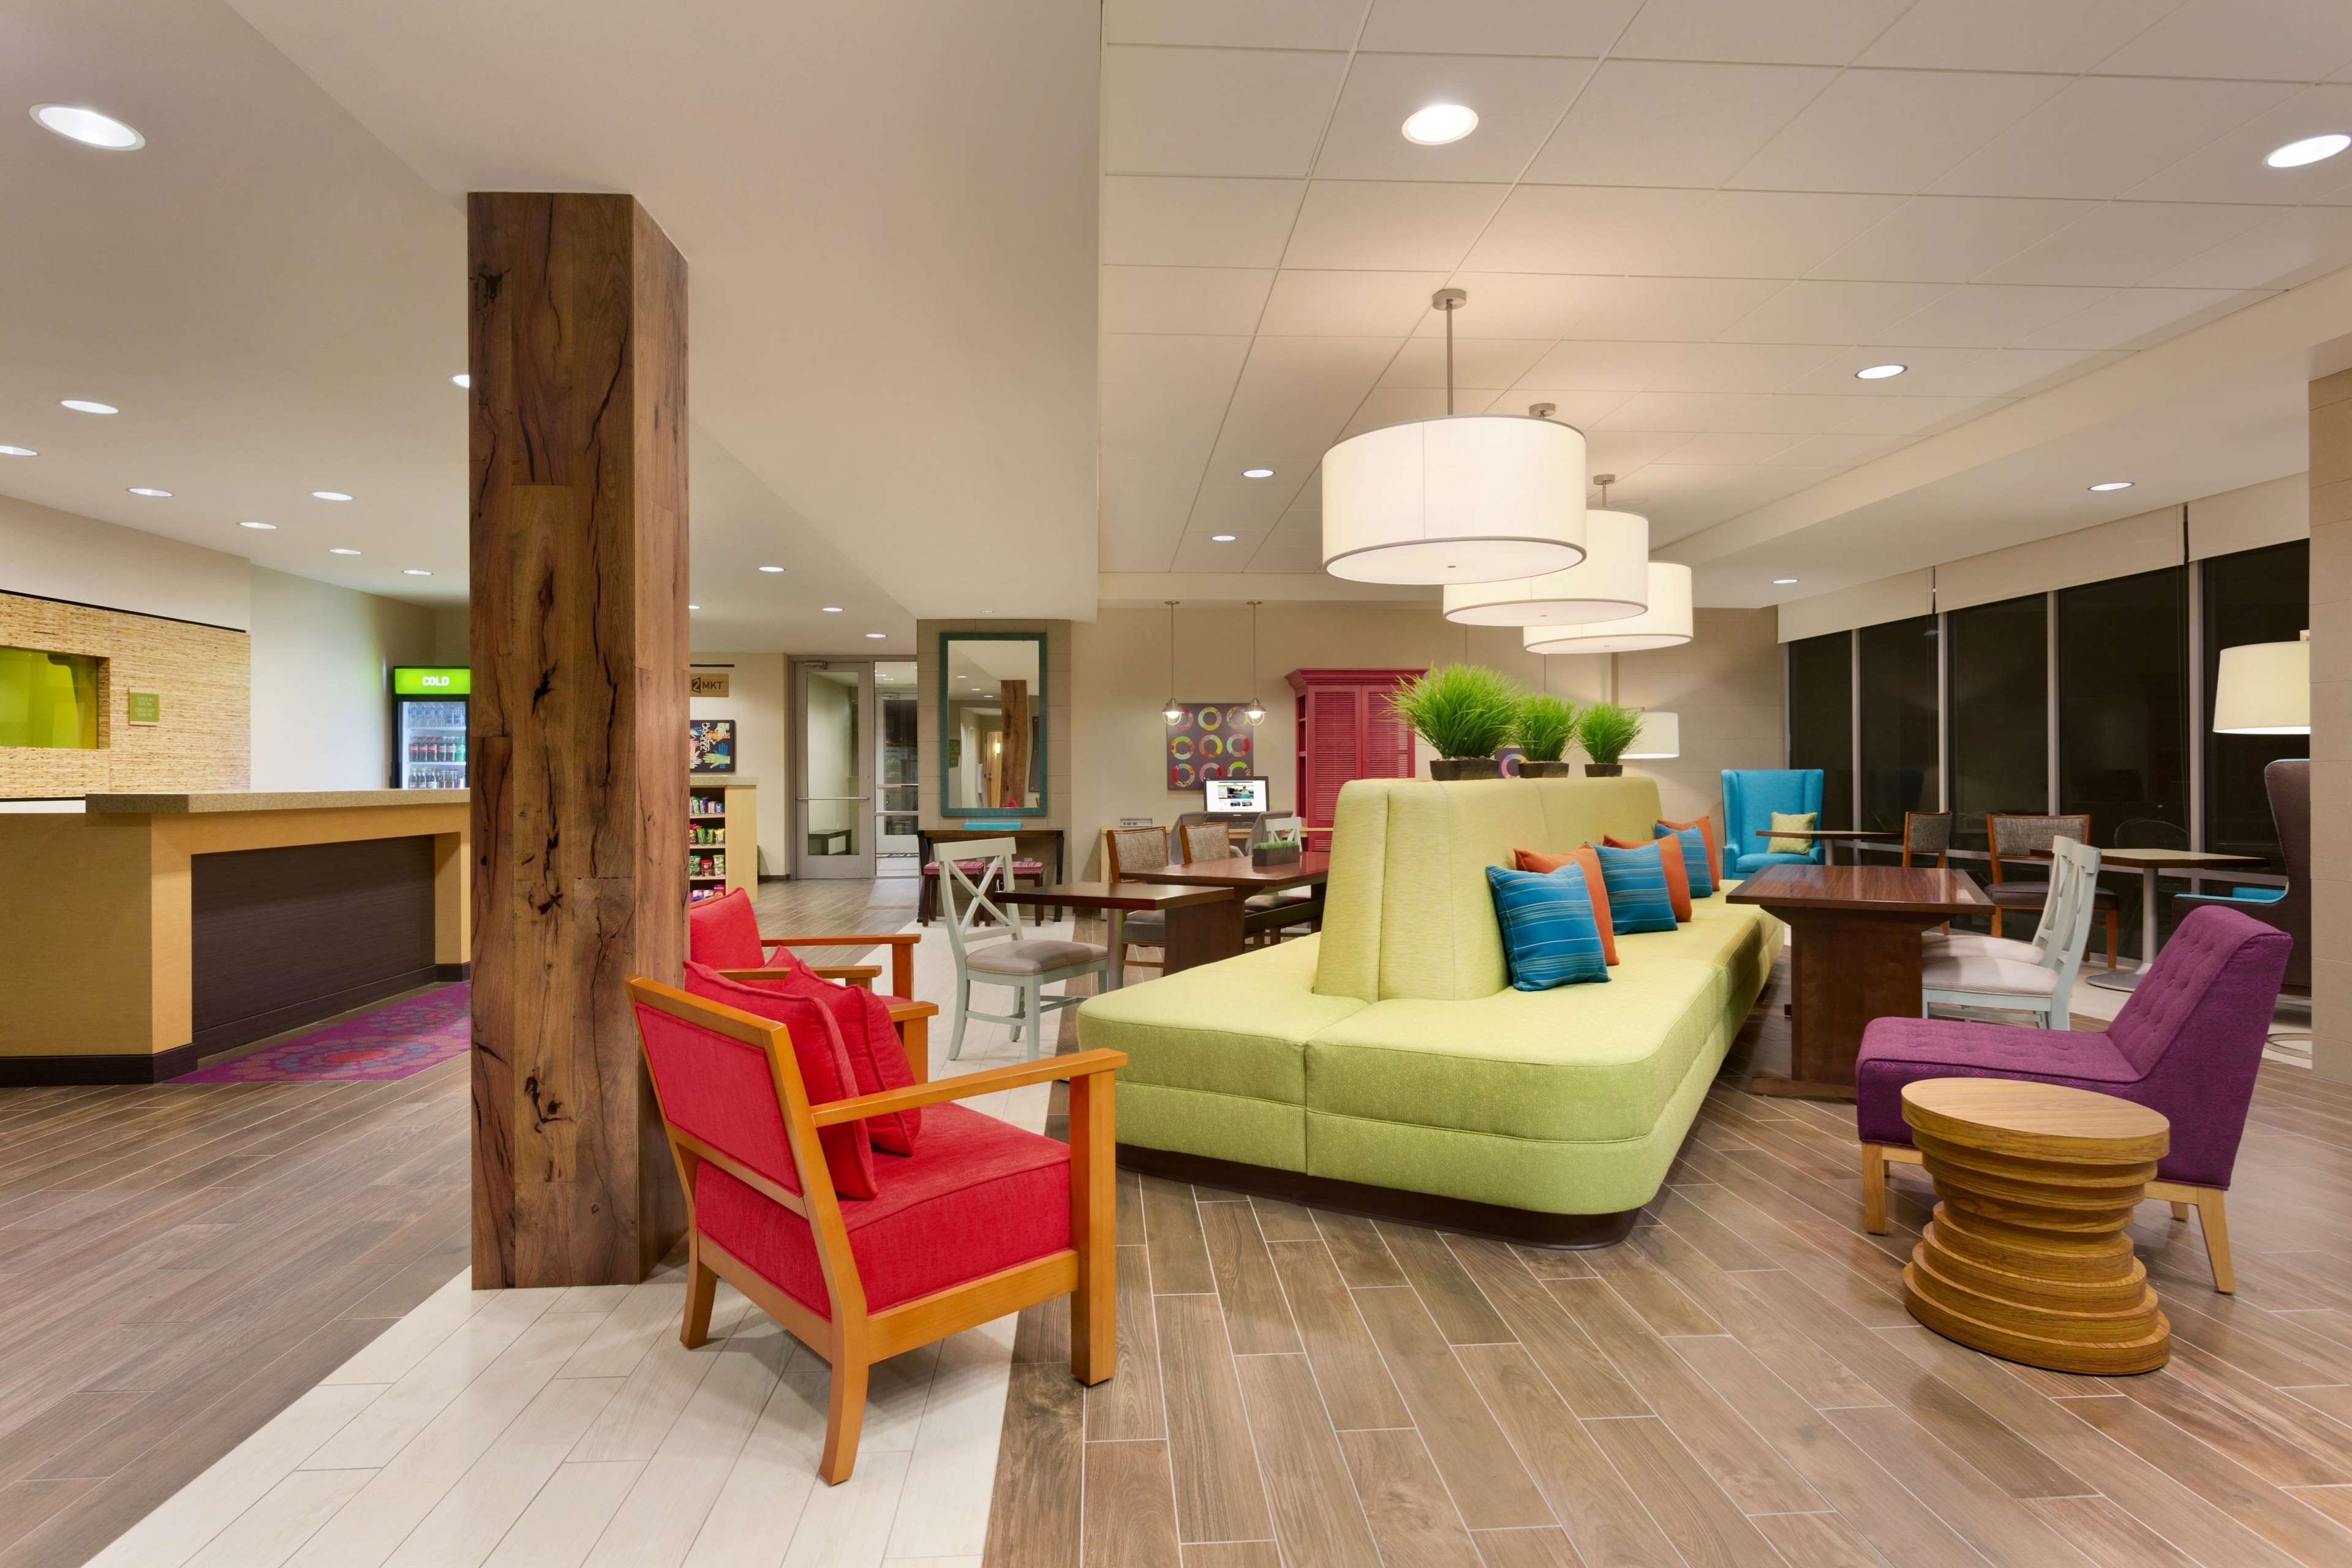 Home2 Suites by Hilton Baltimore / Aberdeen, MD image 1